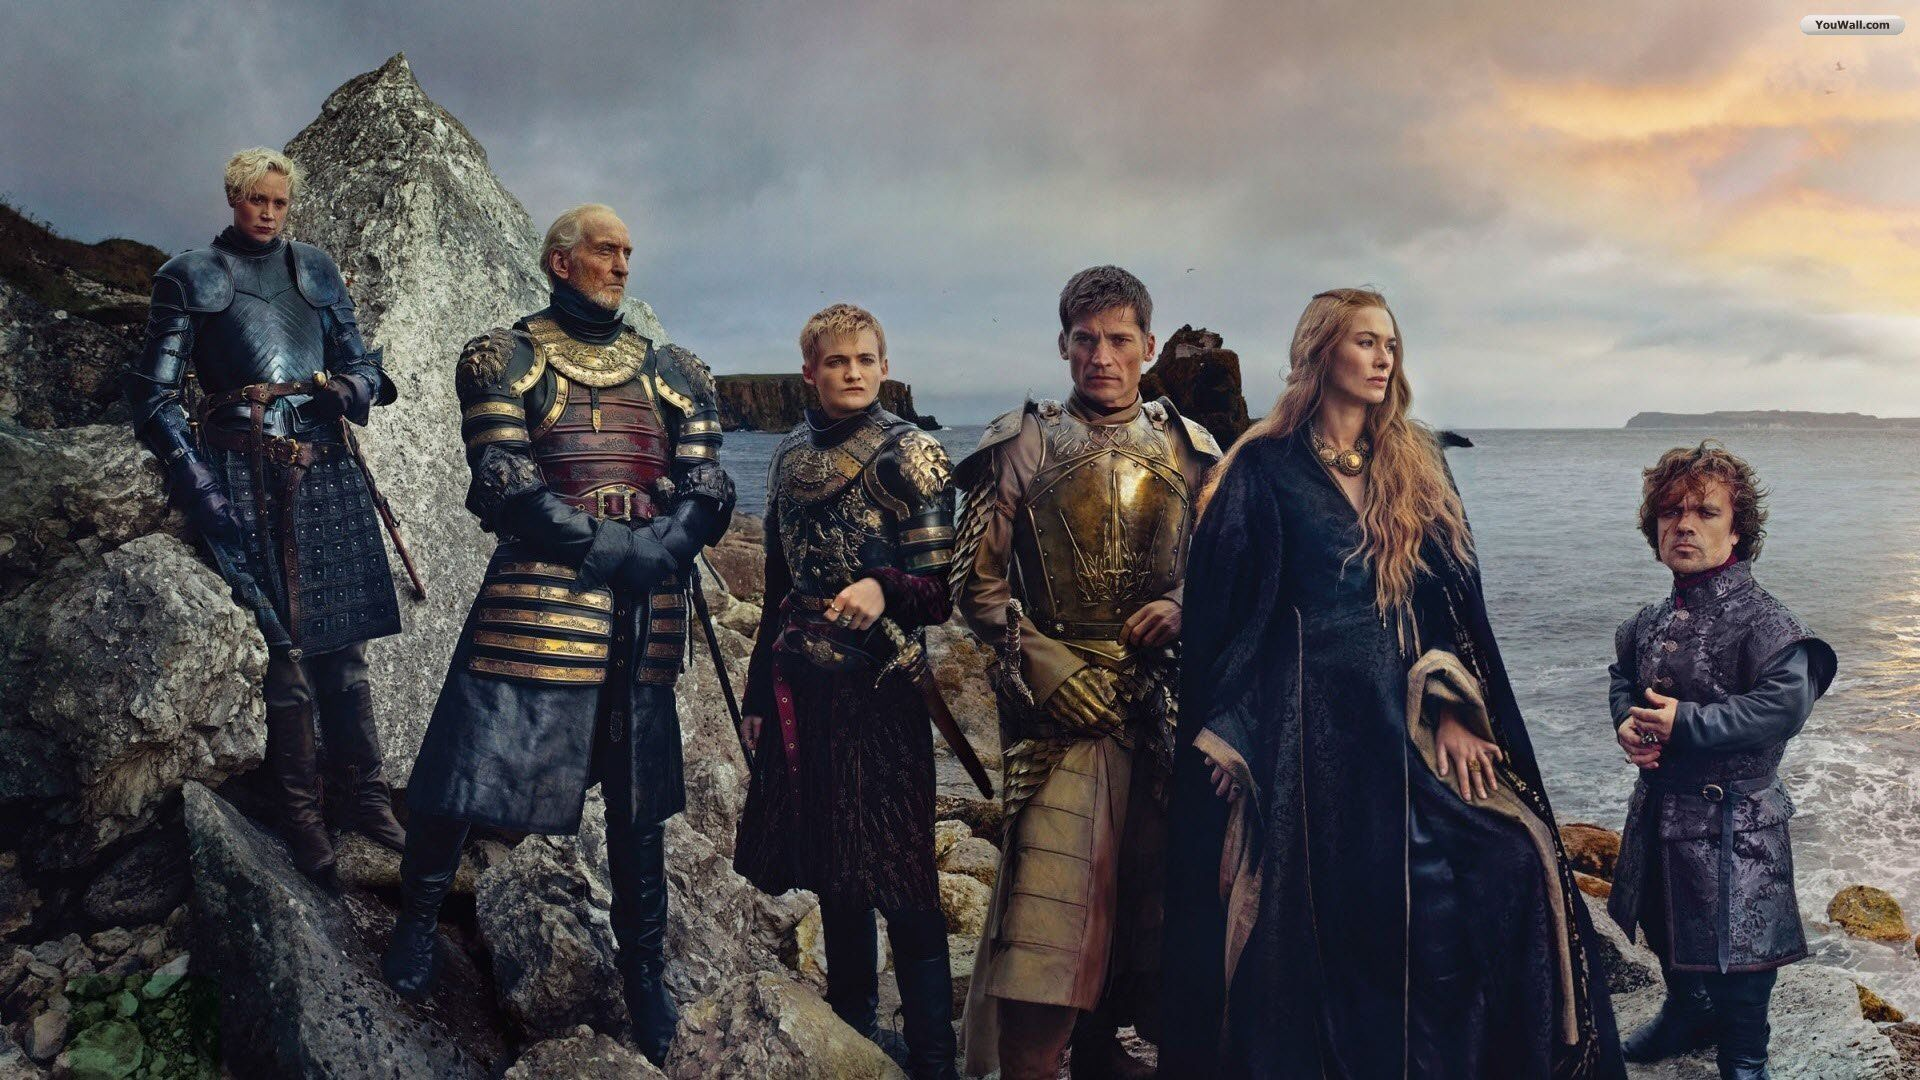 Game Of Thrones Lannisters Wallpaper Game Of Thrones Cast Lannister Family Annie Leibovitz